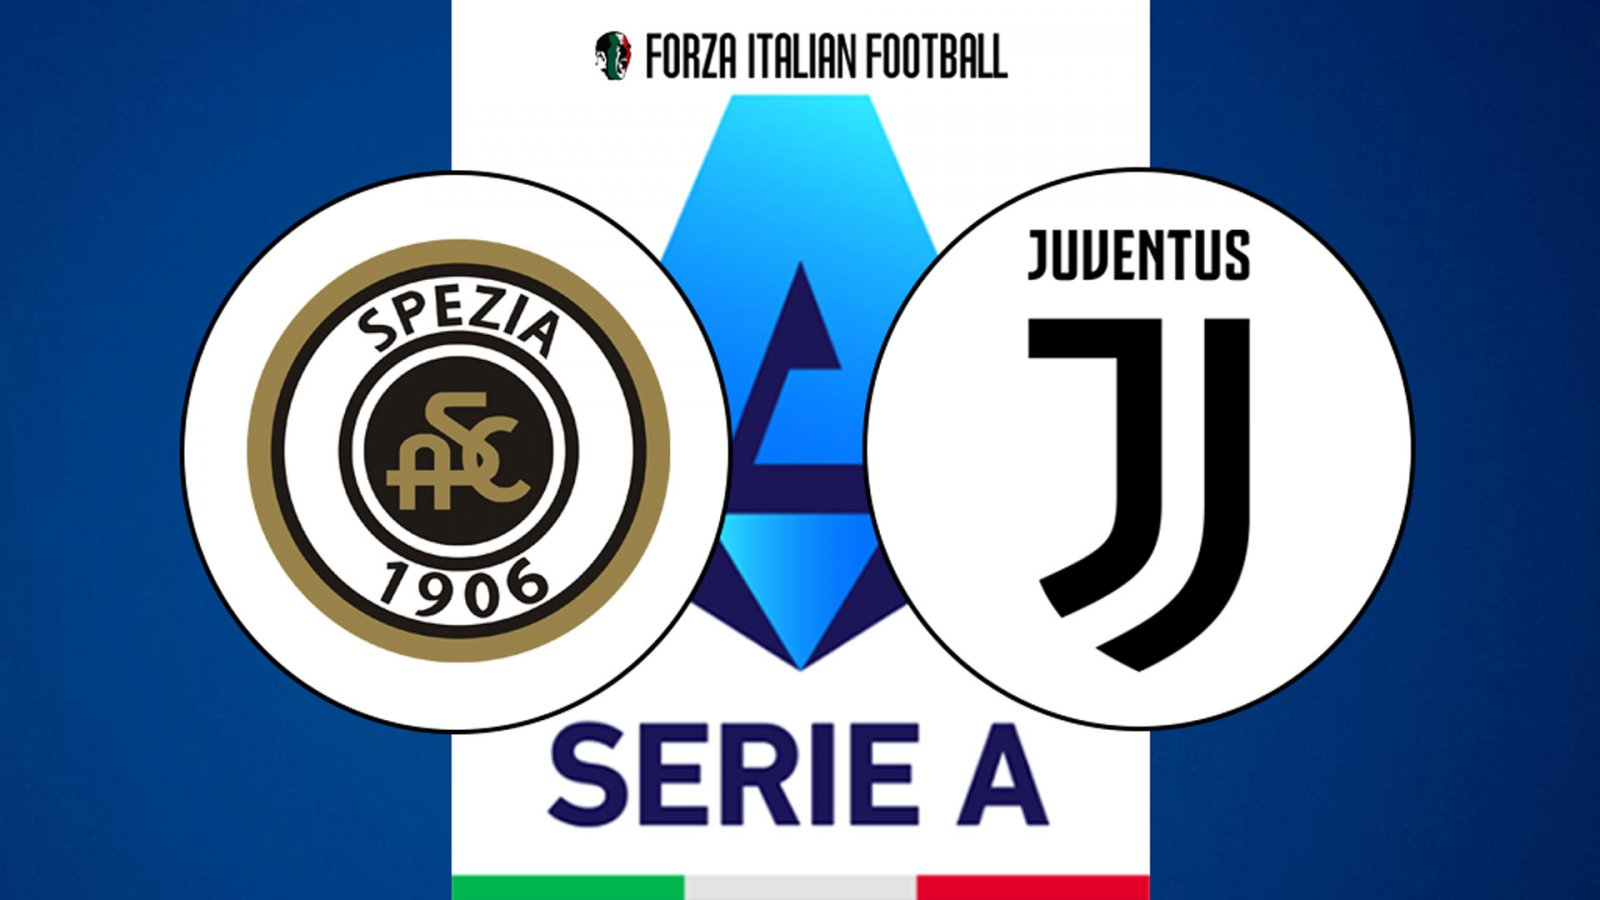 Serie A LIVE – Spezia v Juventus: Probable line-ups, team news and how to watch